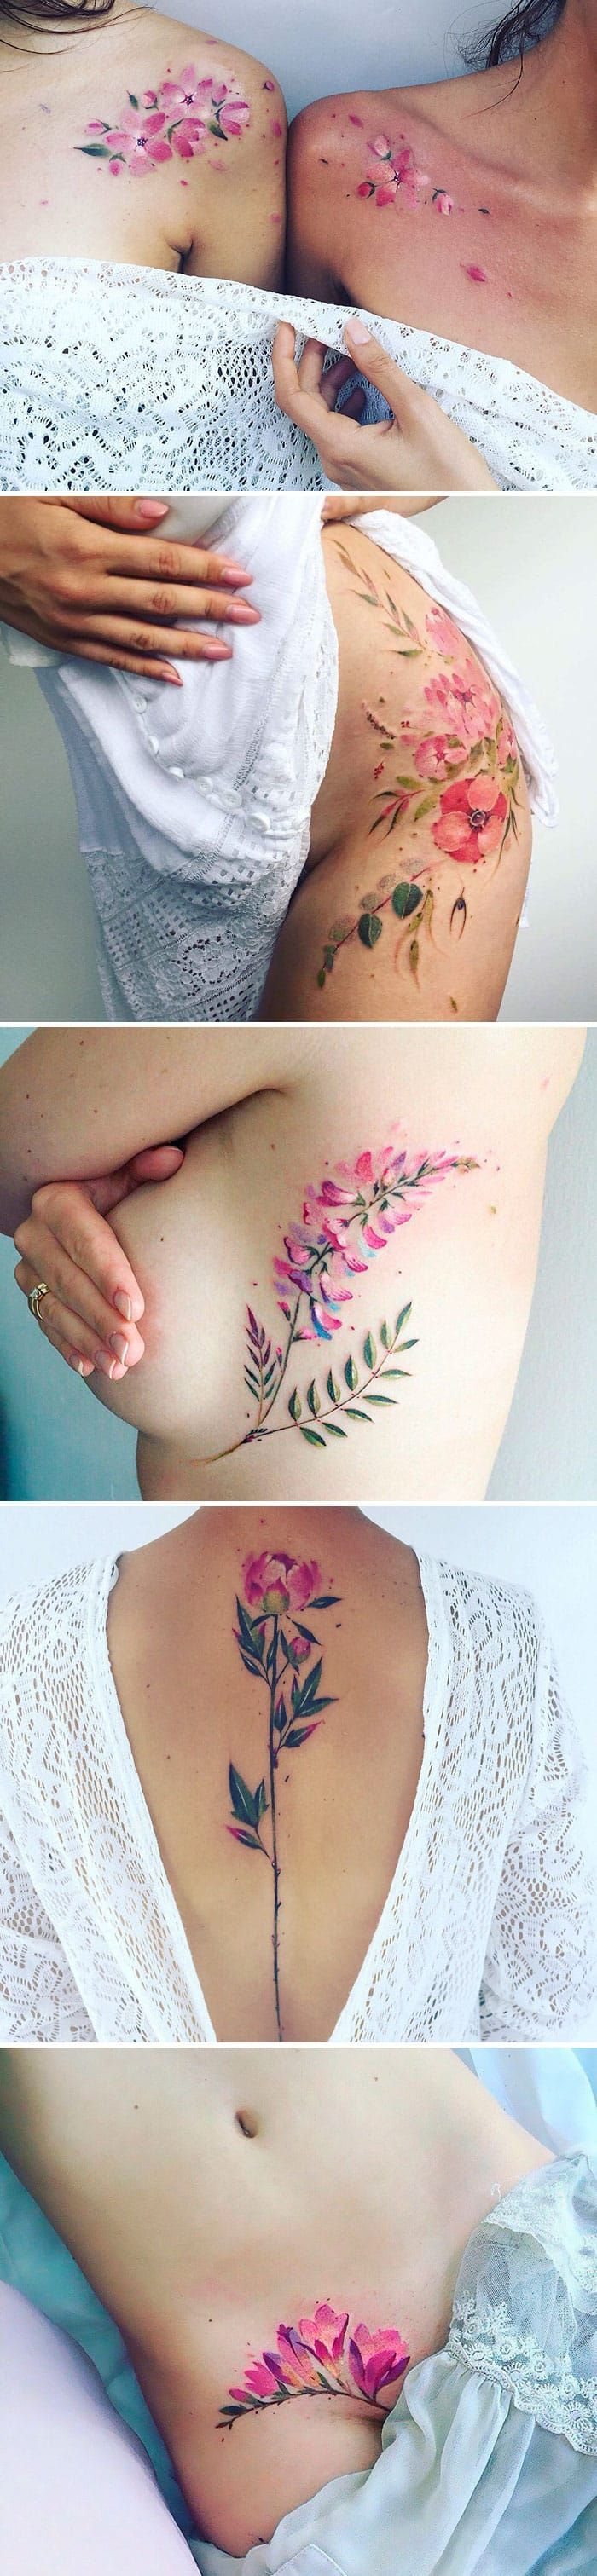 Love these beautiful watercolor tattoos.